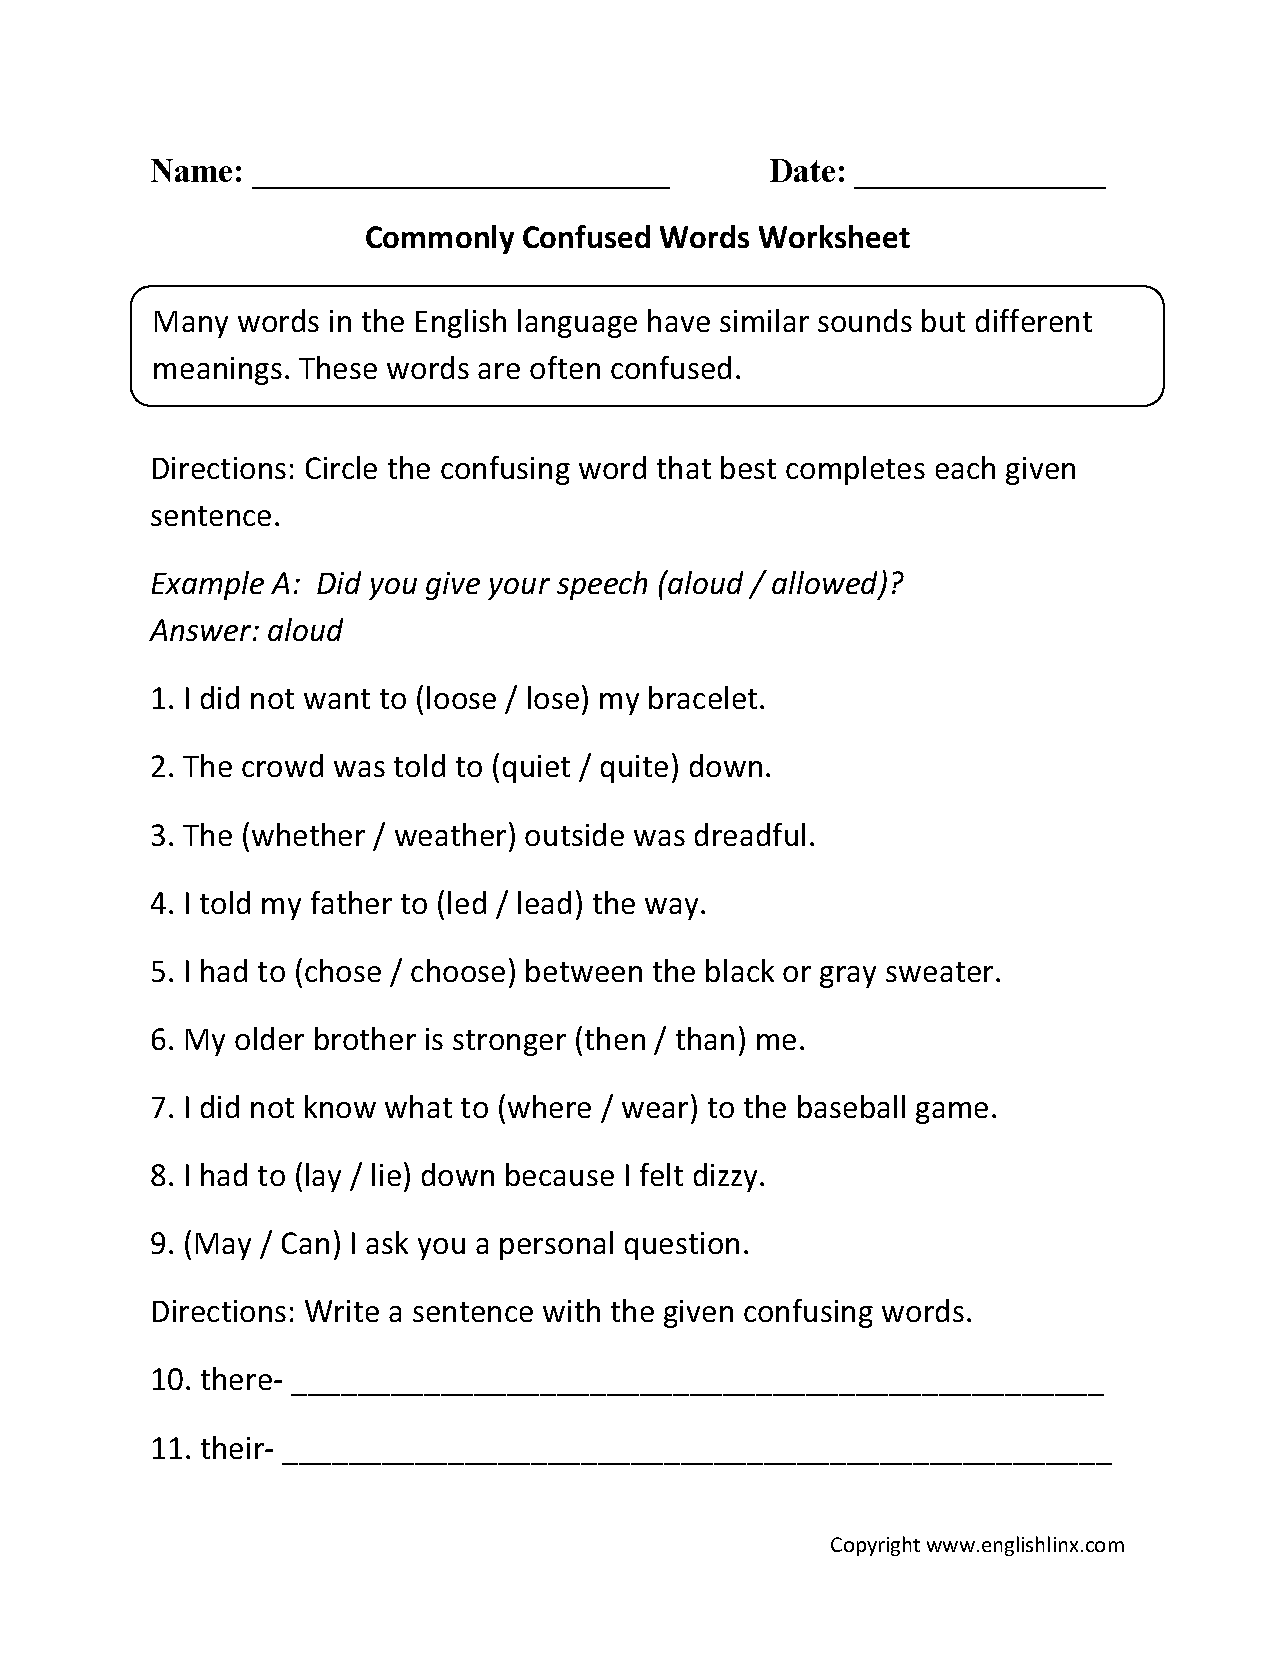 Free Worksheet Commonly Confused Words Worksheet 17 best images about school on pinterest long vowels math worksheets and alphabetical order